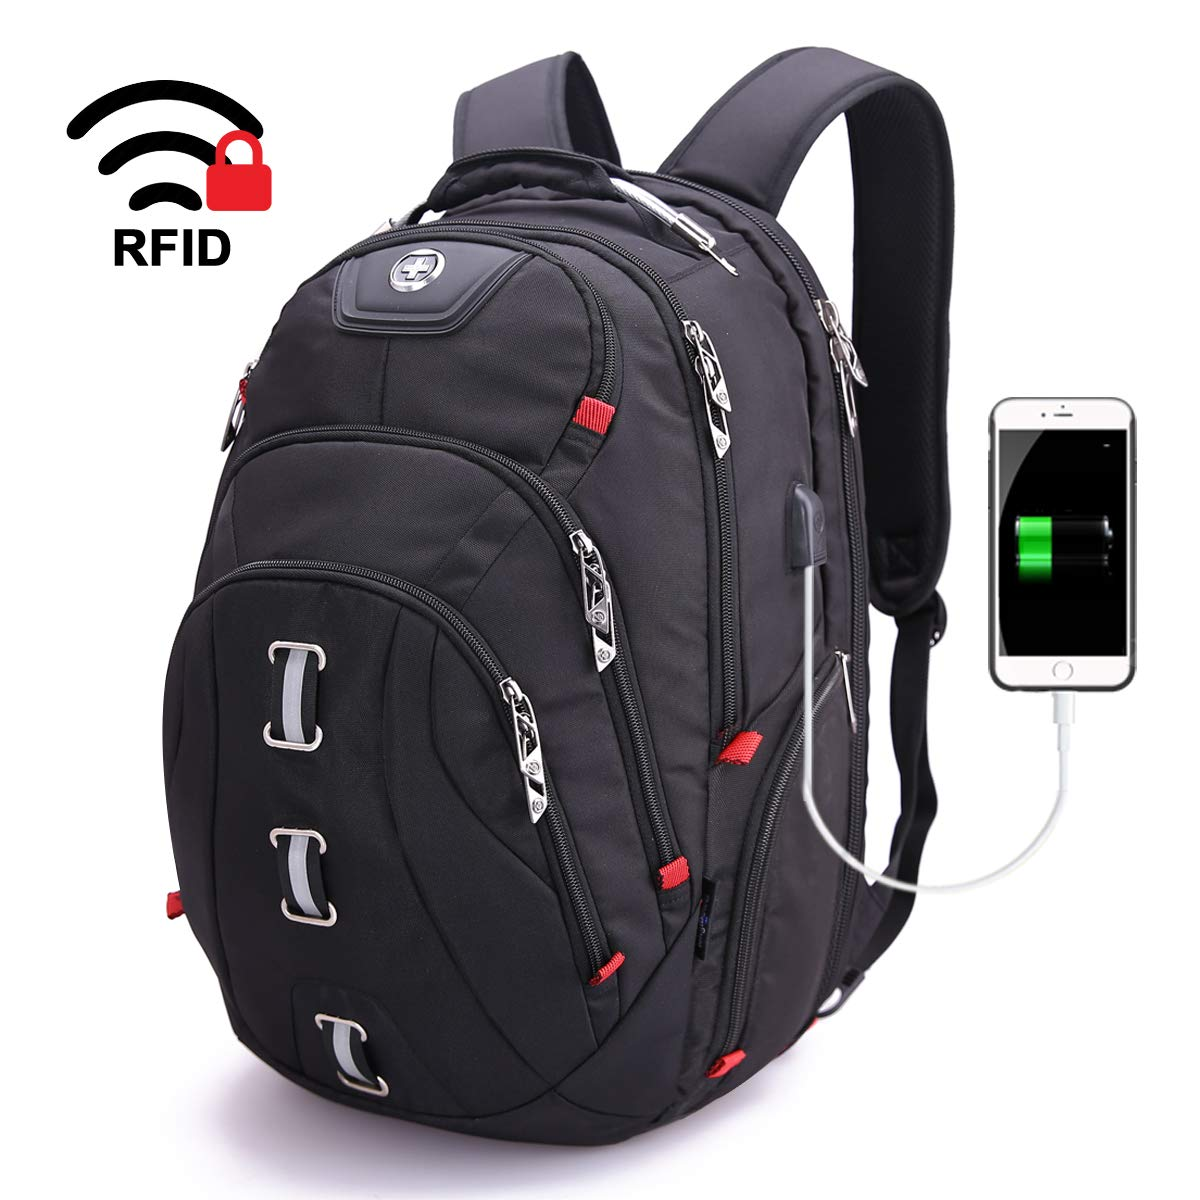 Swissdigital Business Travel Laptop Backpack-for Man and Woman with Smart USB Charging Port Fits 15.6 inches laptops, Black by Swissdigital